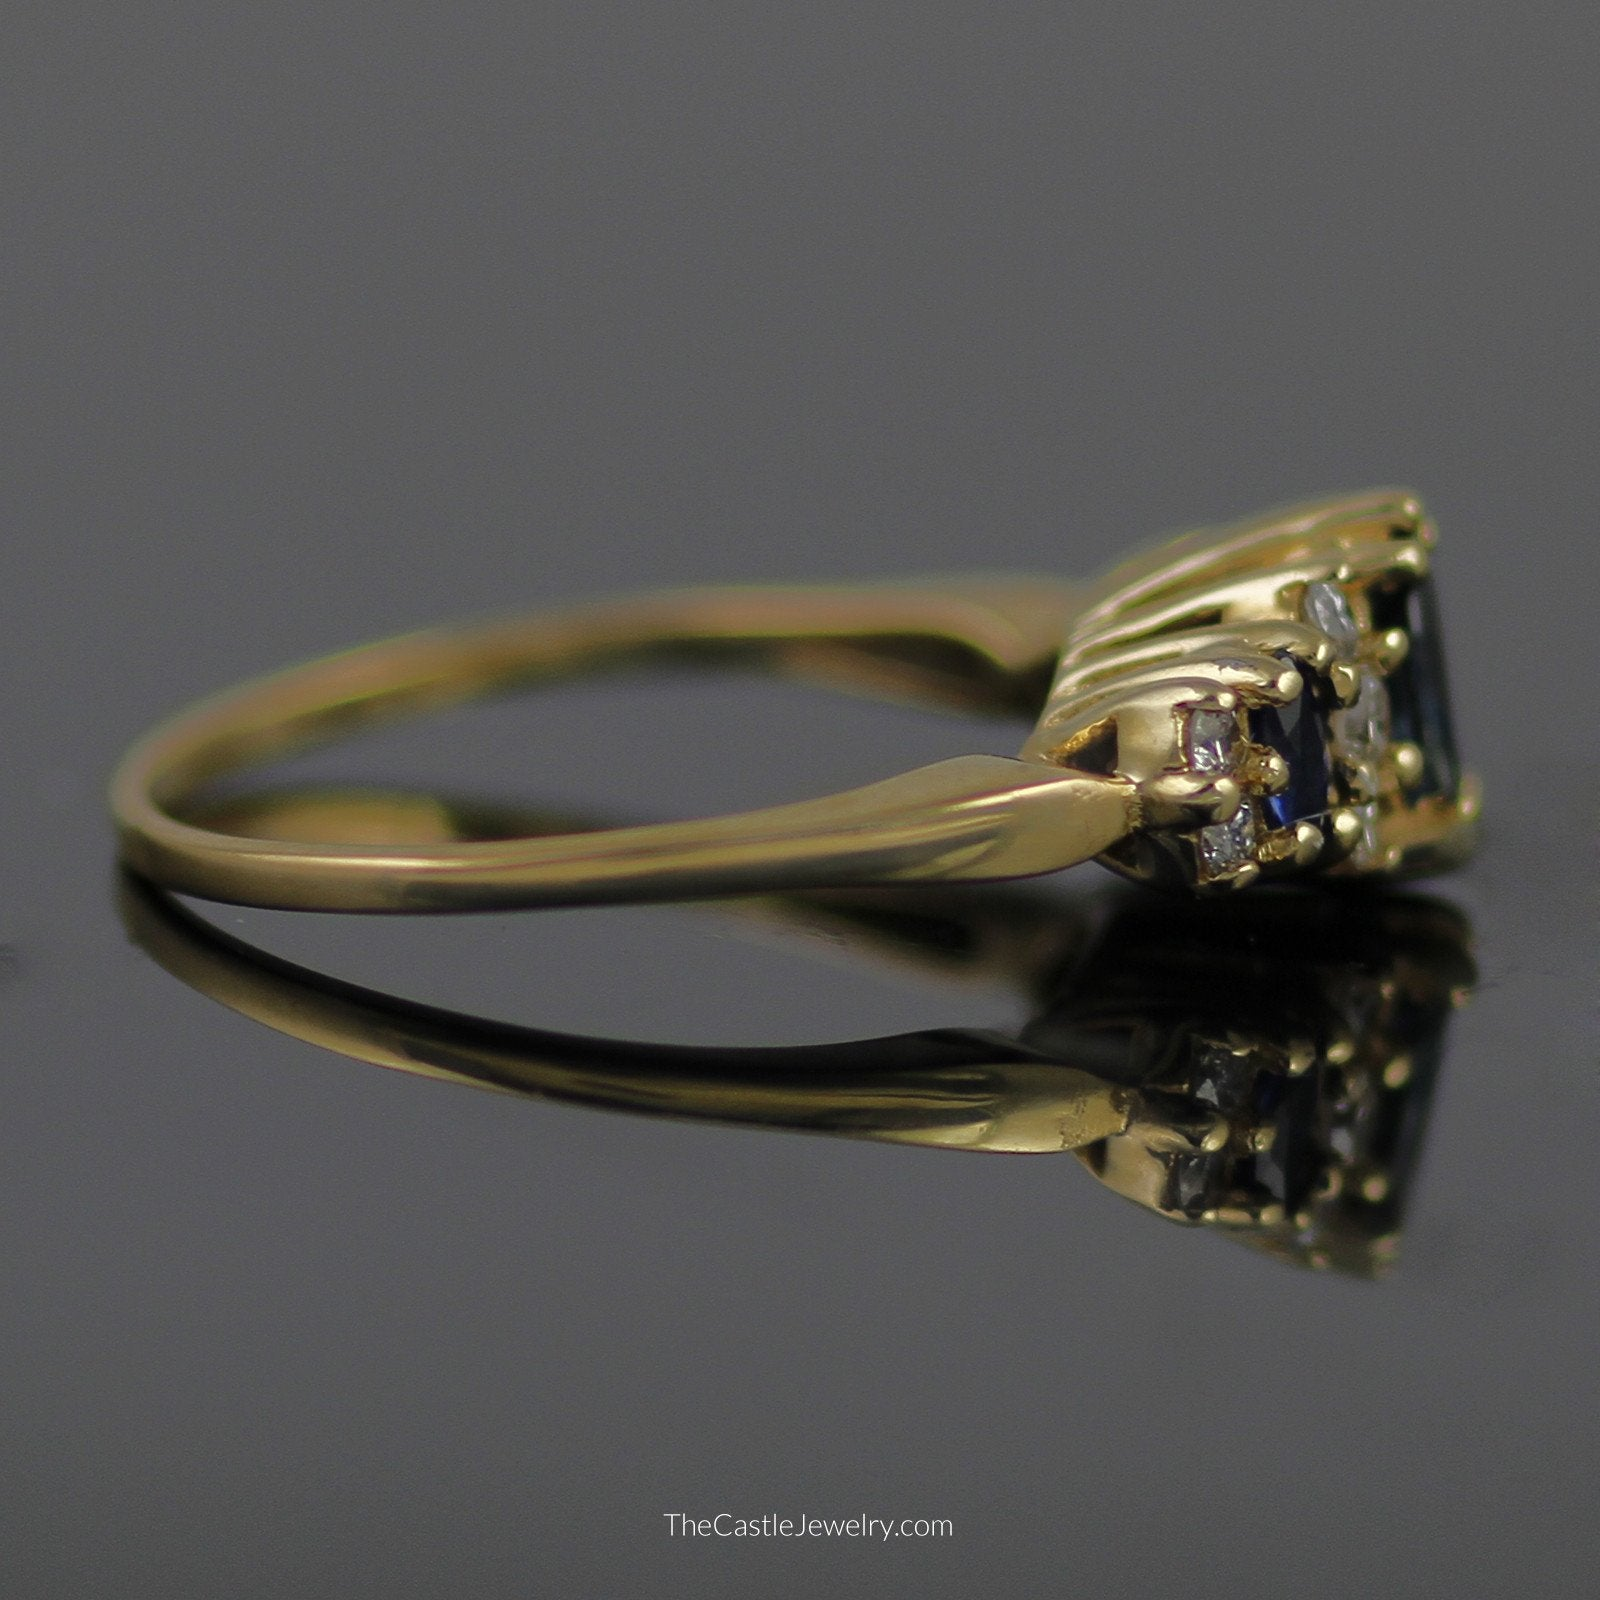 Marquise Sapphire Ring with Diamond Accents in 14K Yellow Gold-2